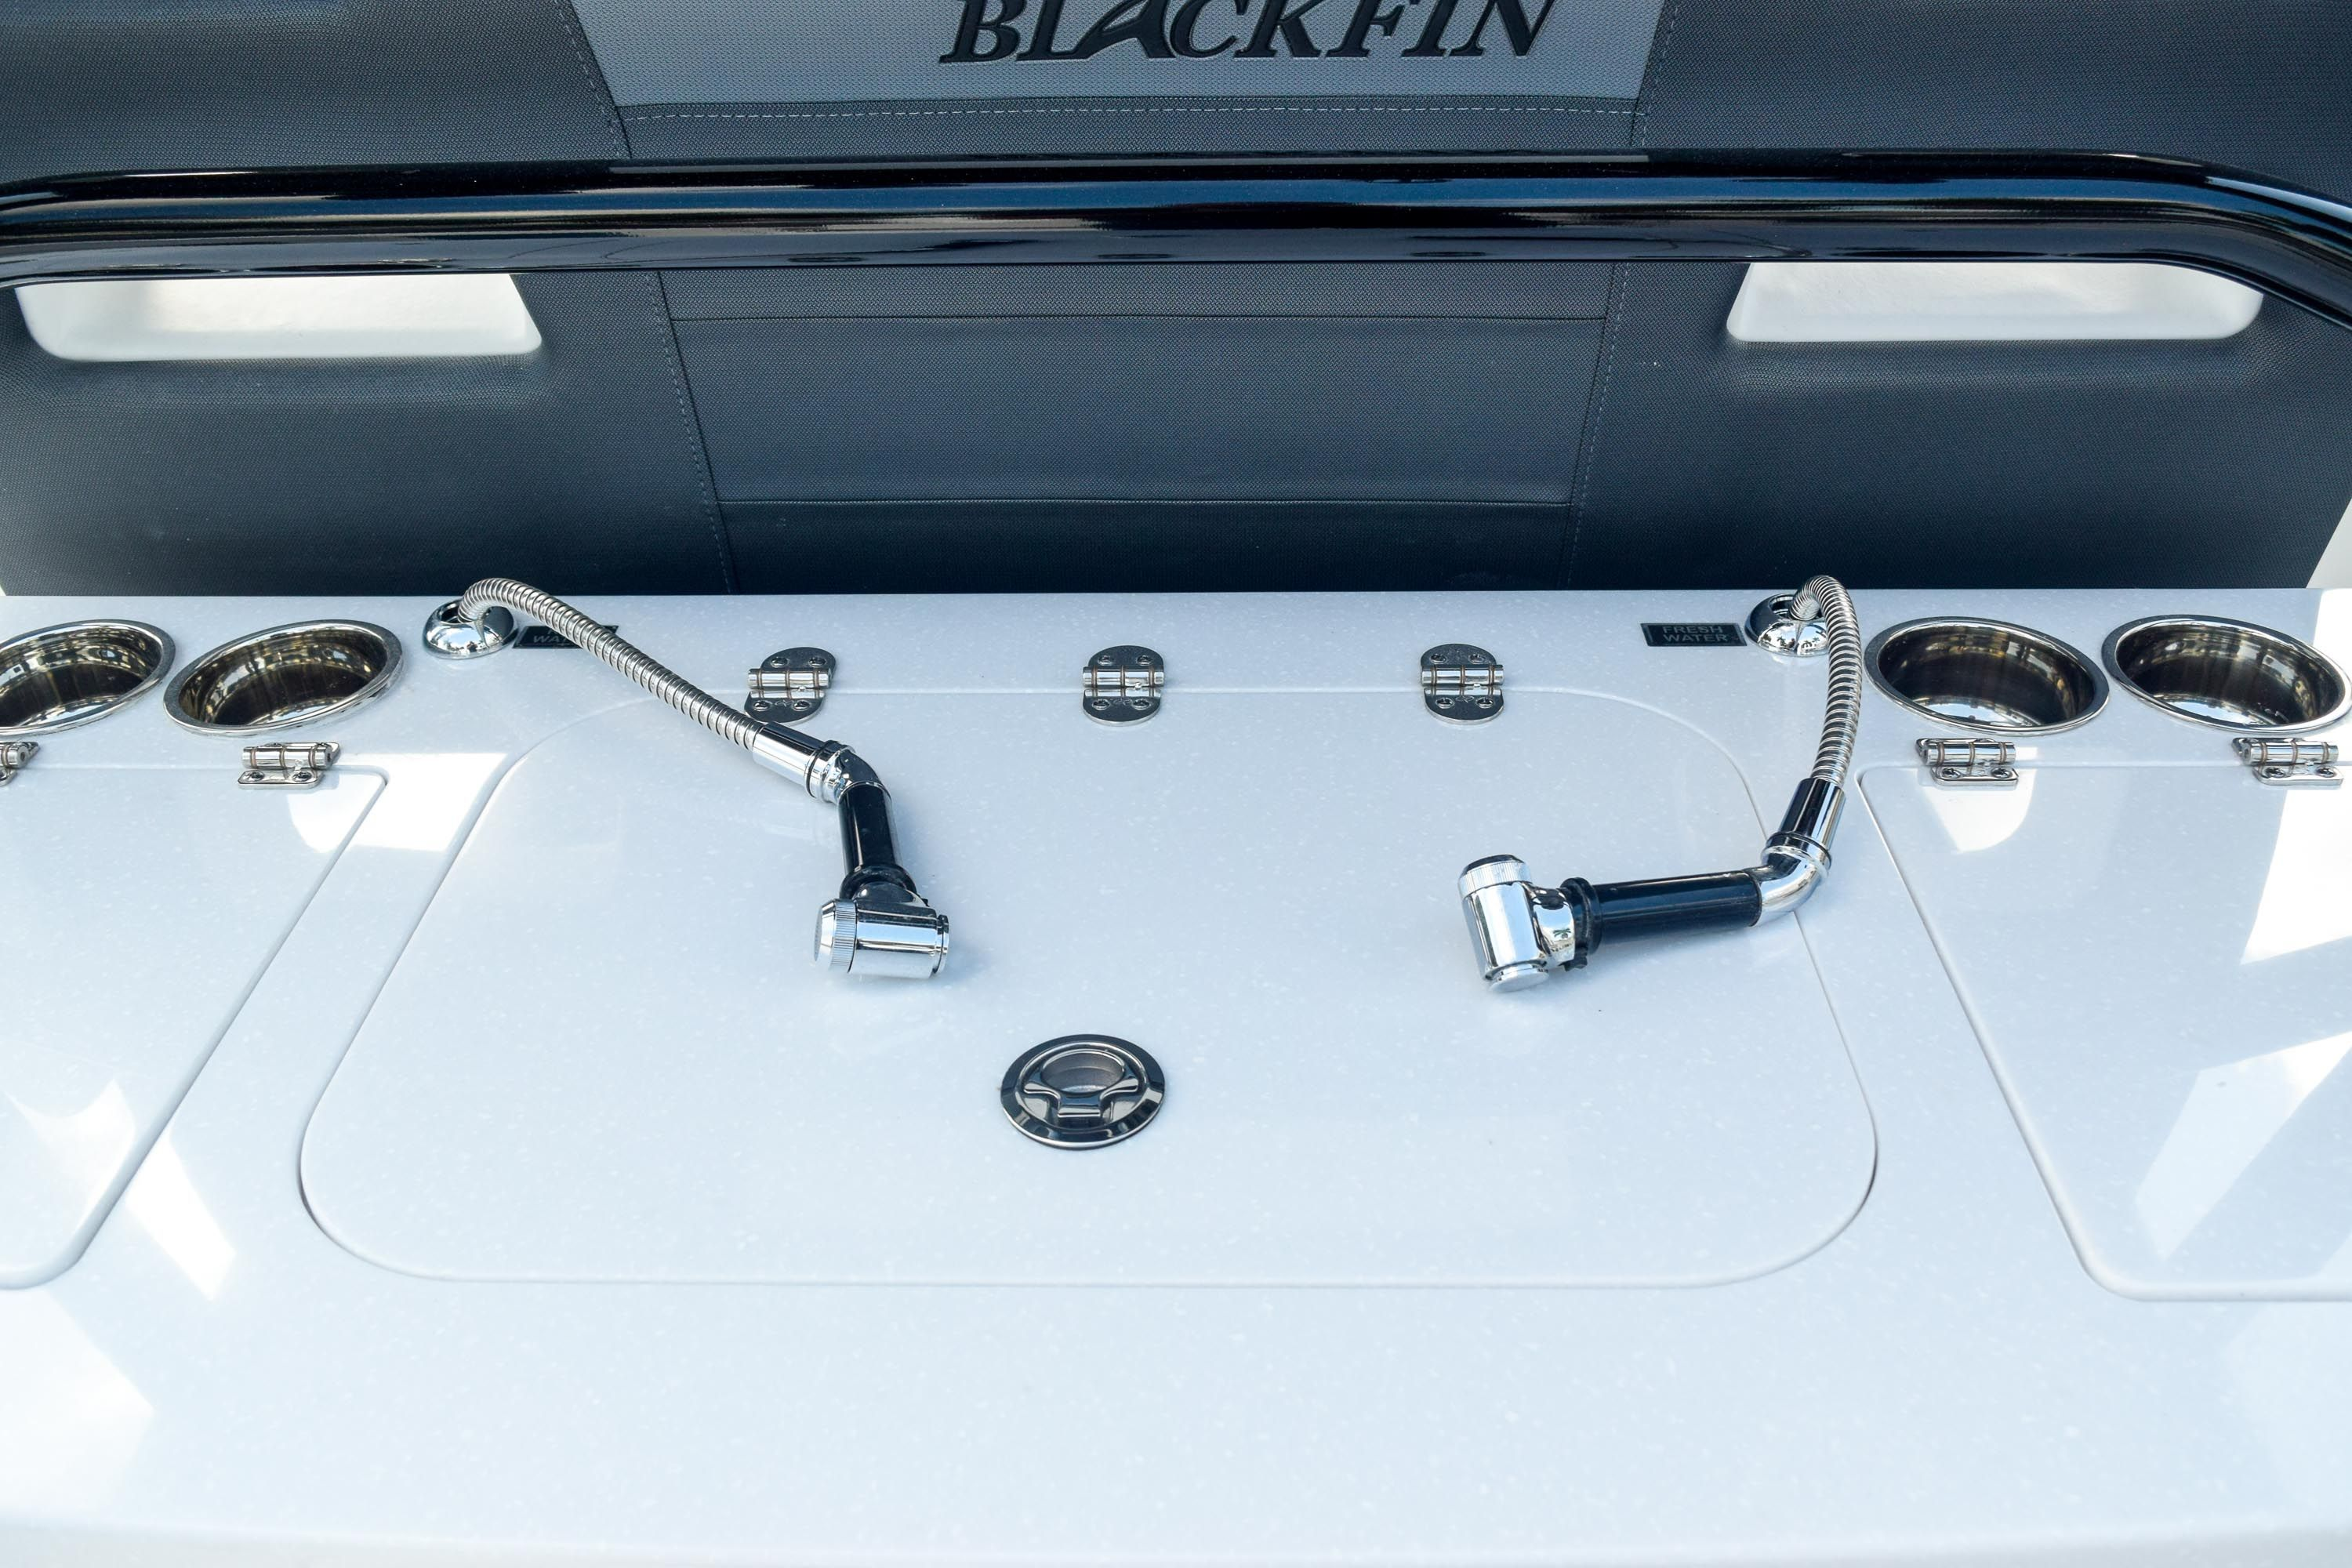 Thumbnail 29 for New 2020 Blackfin 332CC Center Console boat for sale in Fort Lauderdale, FL